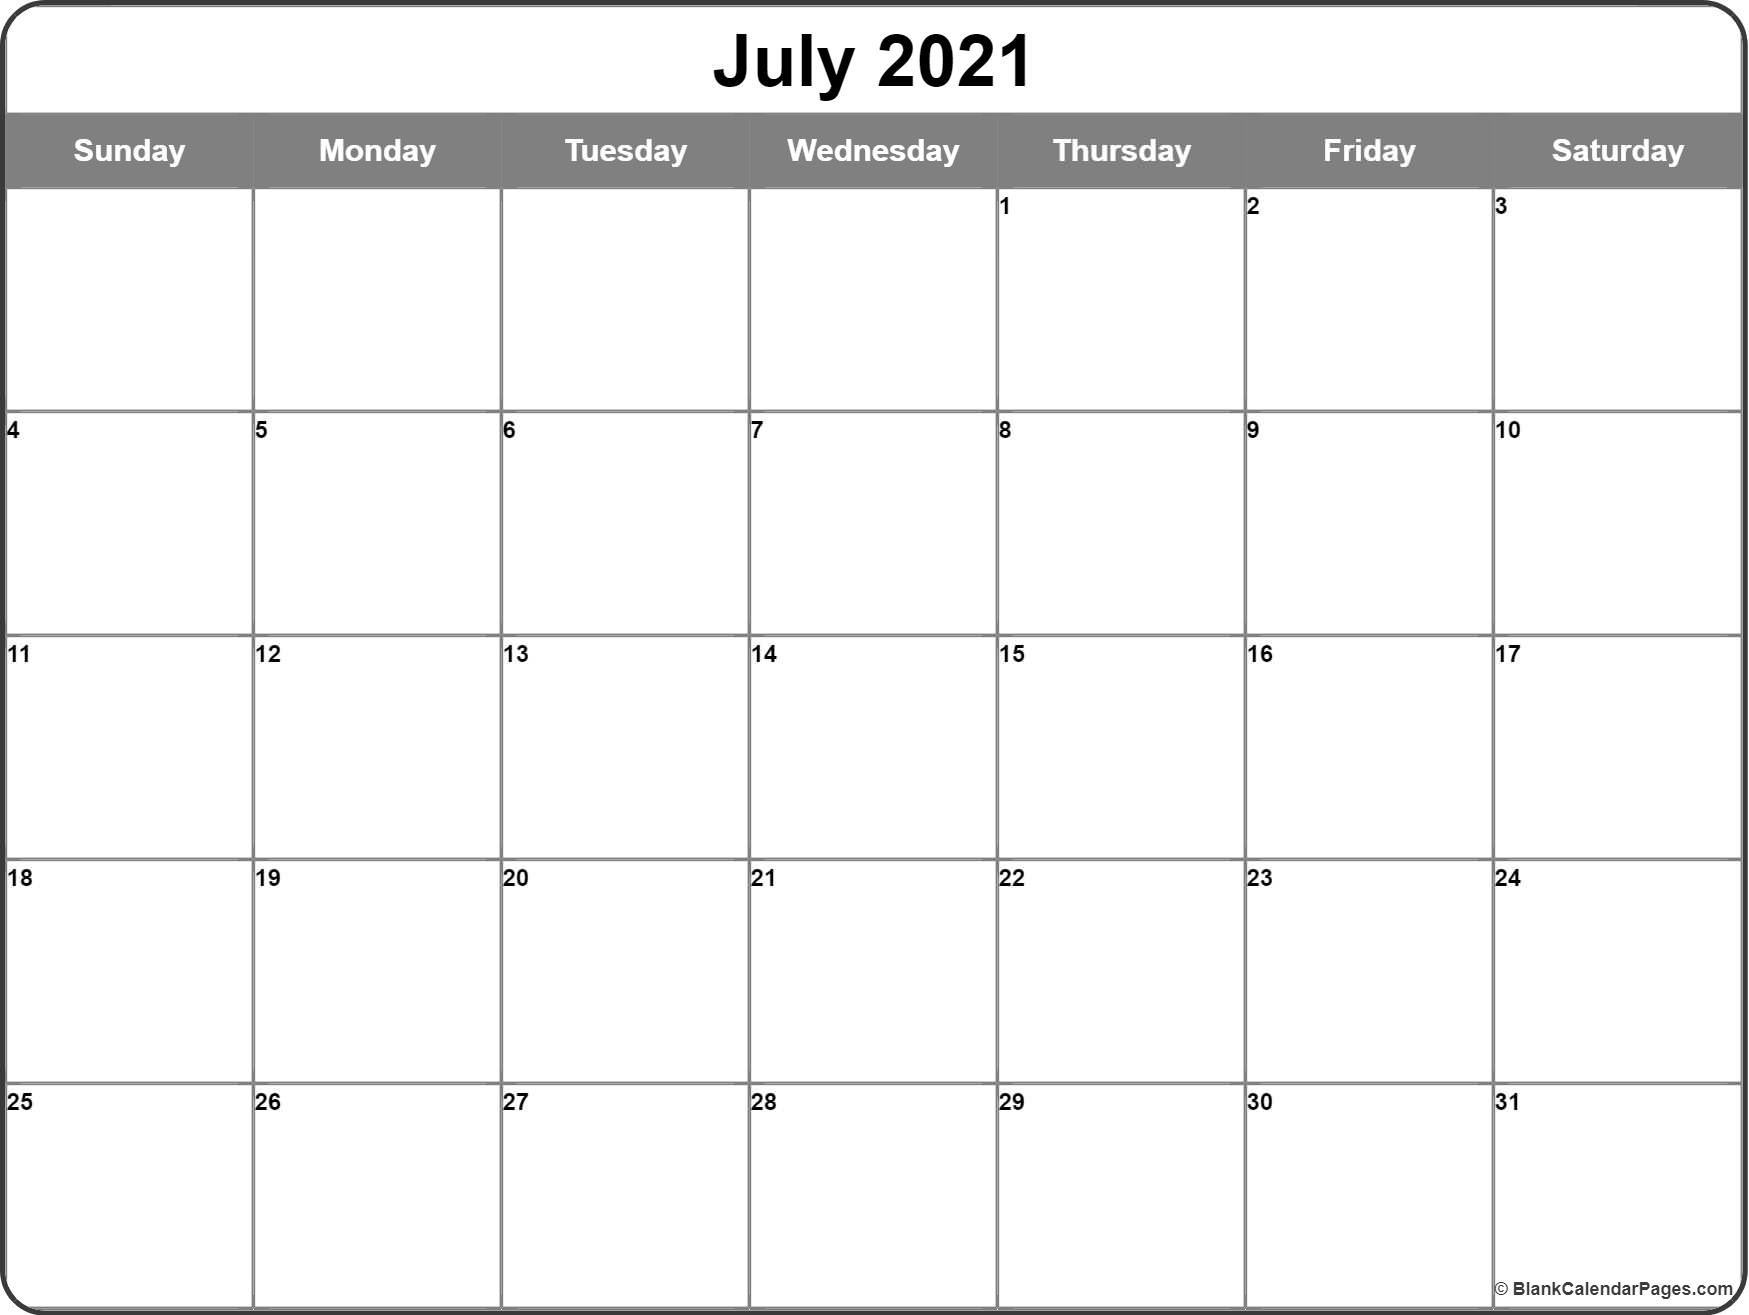 July 2021 Calendar | Free Printable Monthly Calendars-Fill In Calendar For 2021